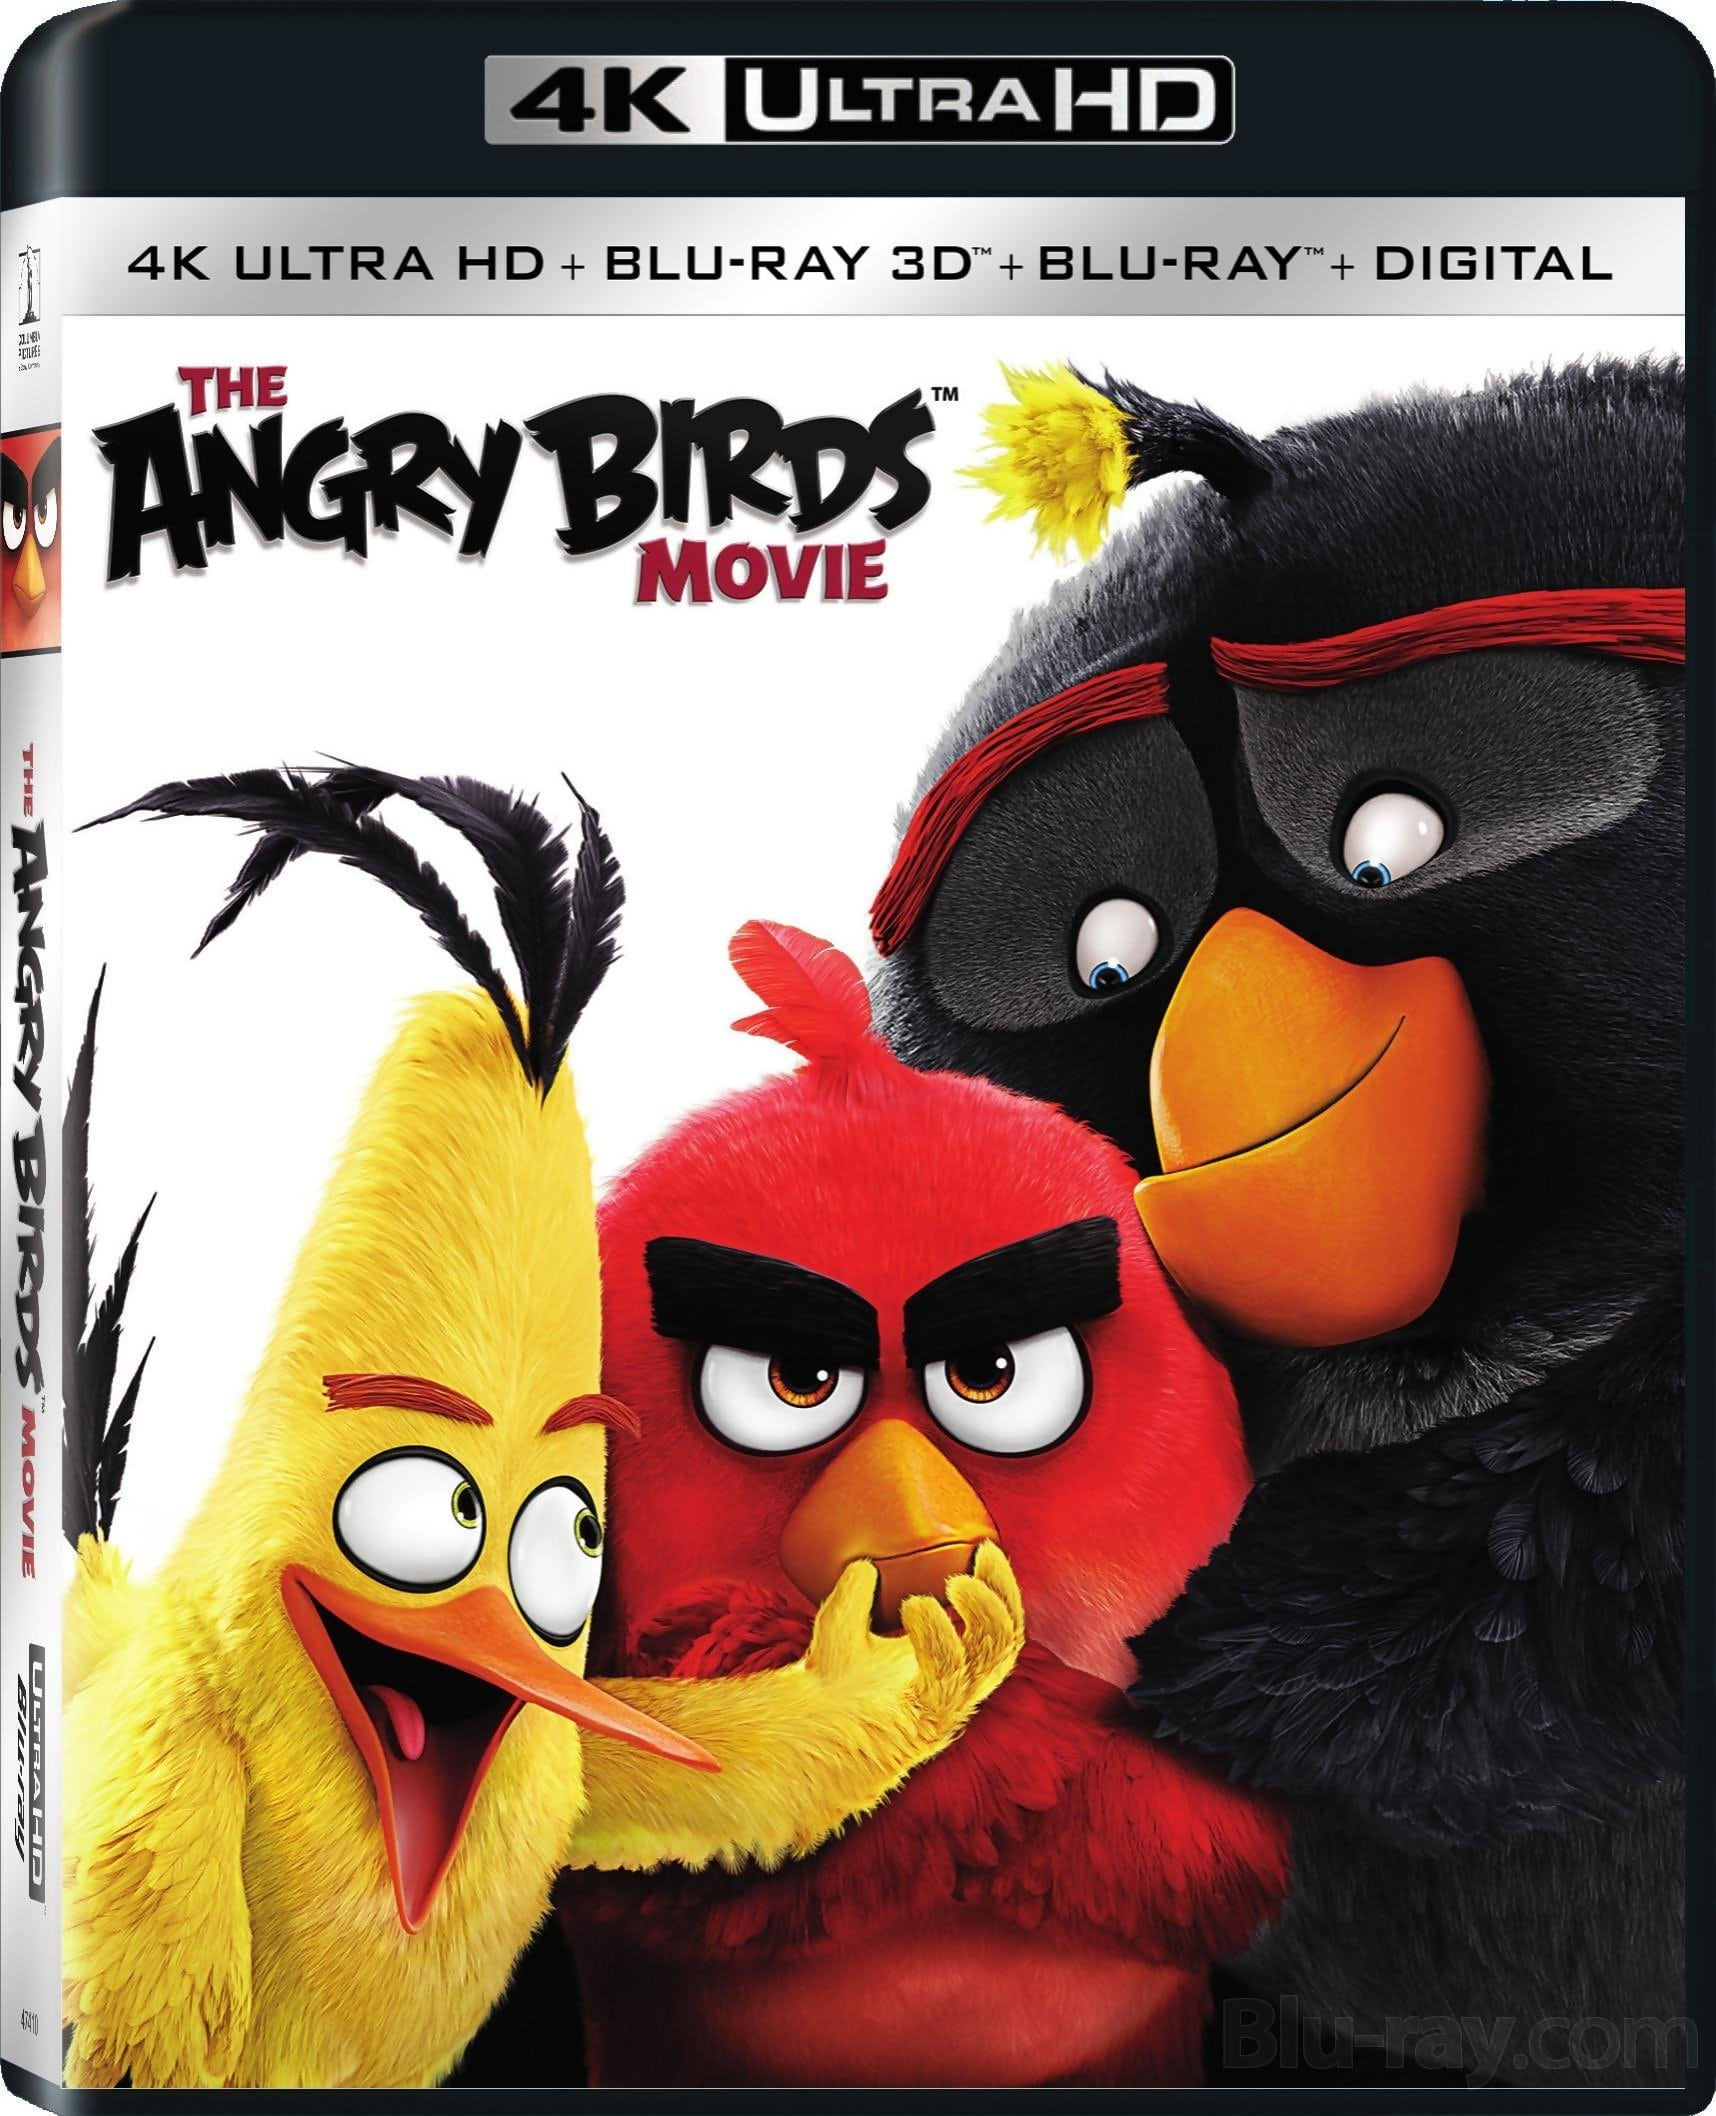 Angry Birds 4K 2016 HDR RIP Ultra HD 2160p